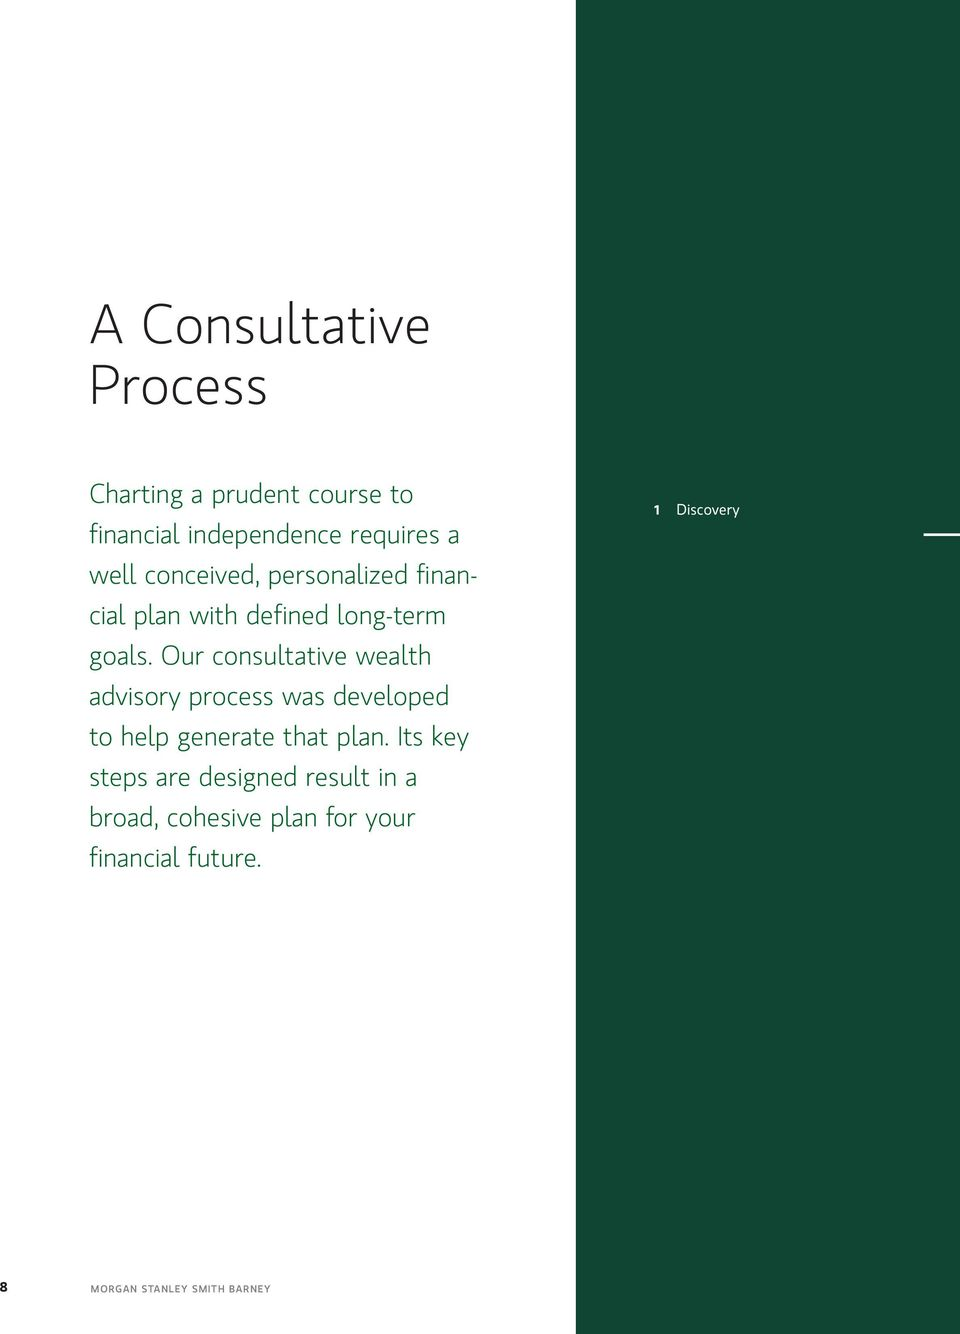 Our consultative wealth advisory process was developed to help generate that plan.